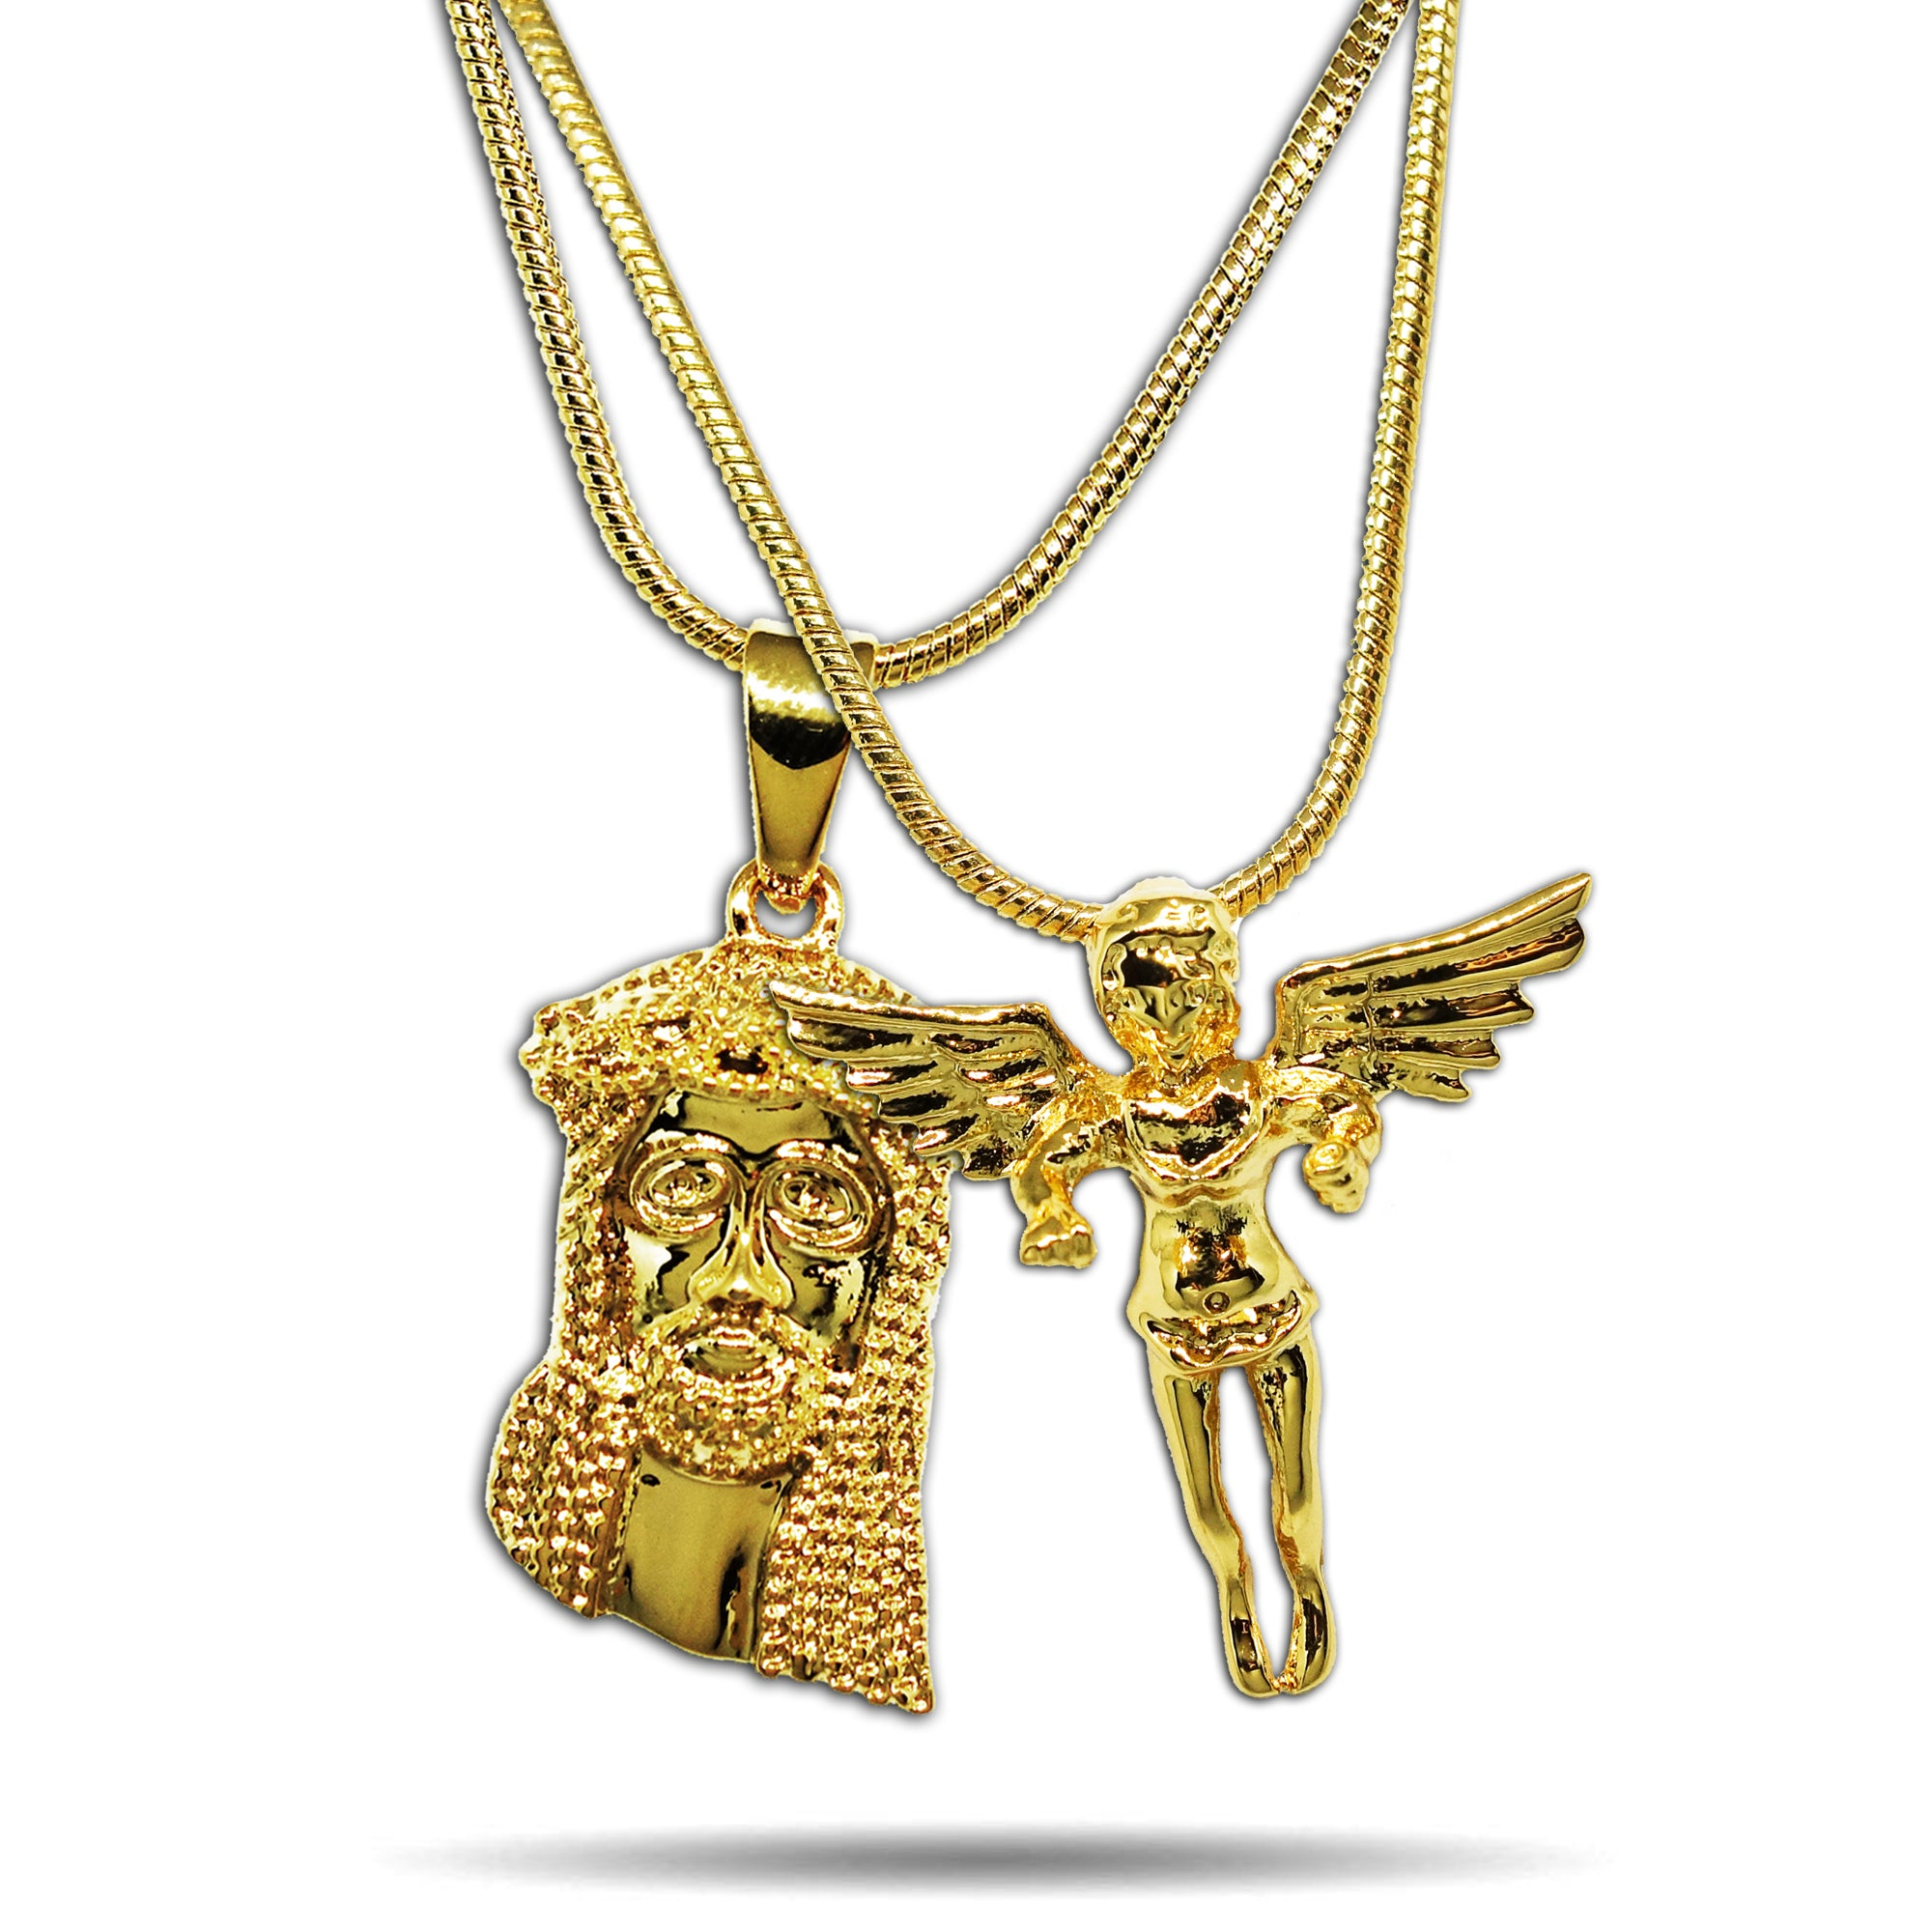 GOLD MICRO JESUS PIECE + ANGEL NECKLACE SET